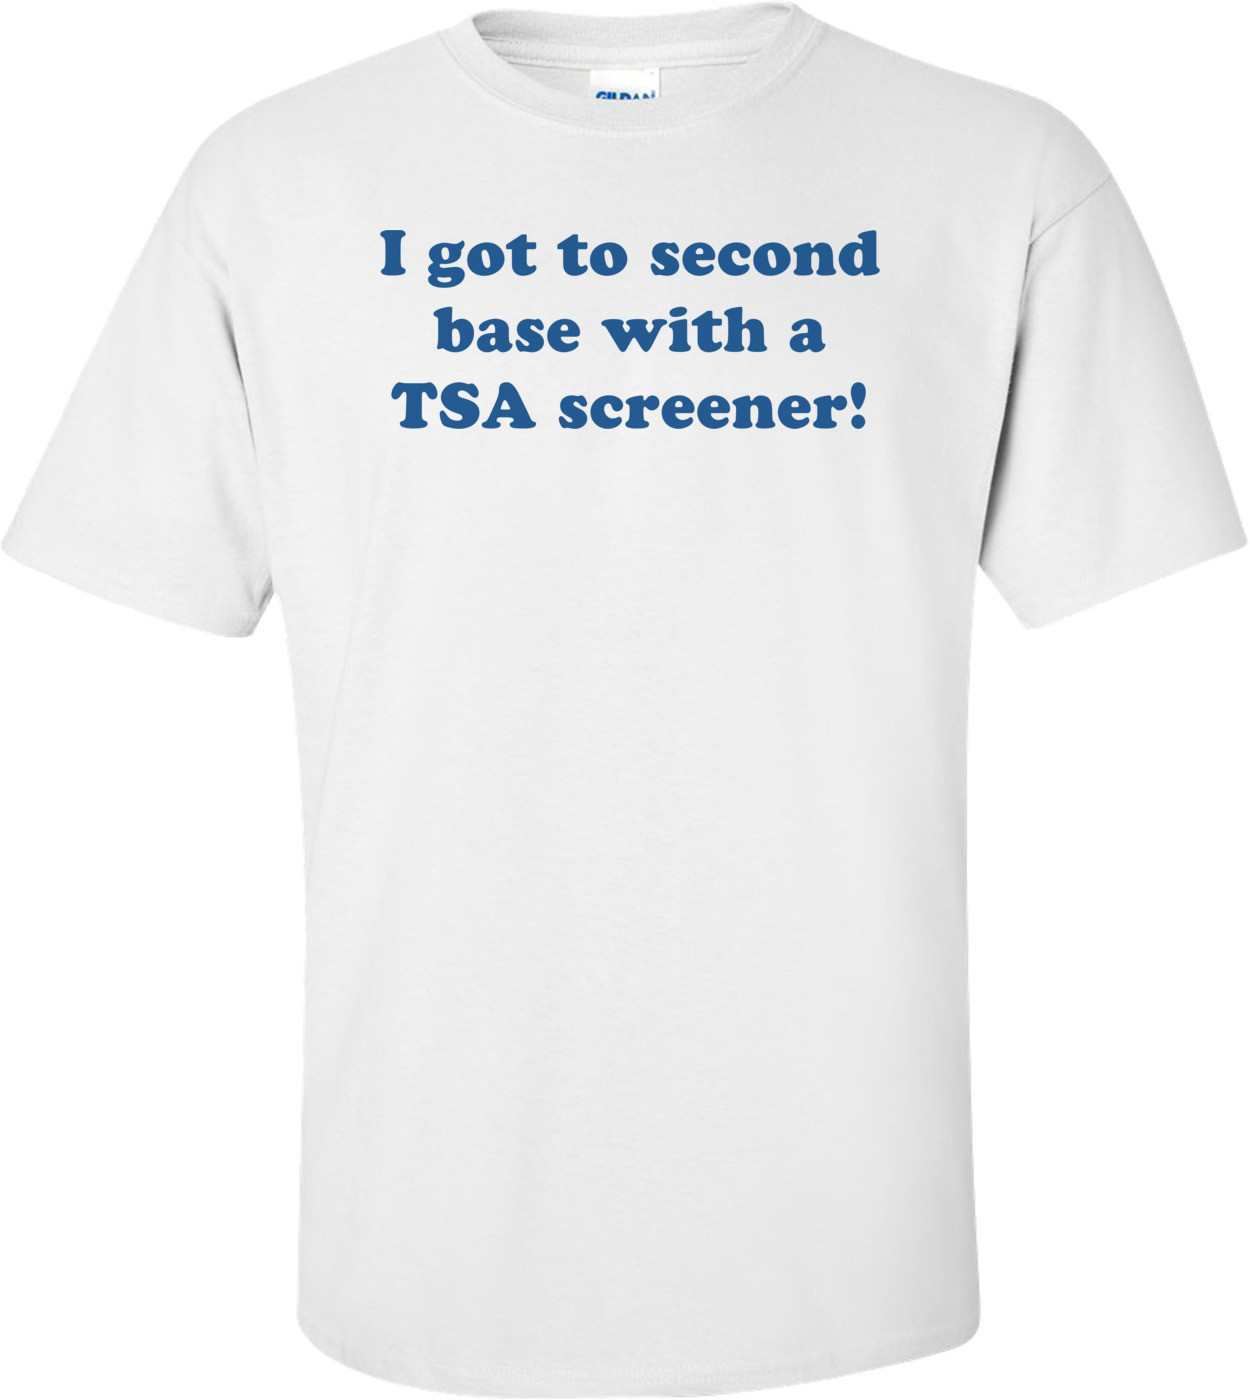 I got to second base with a TSA screener! Shirt